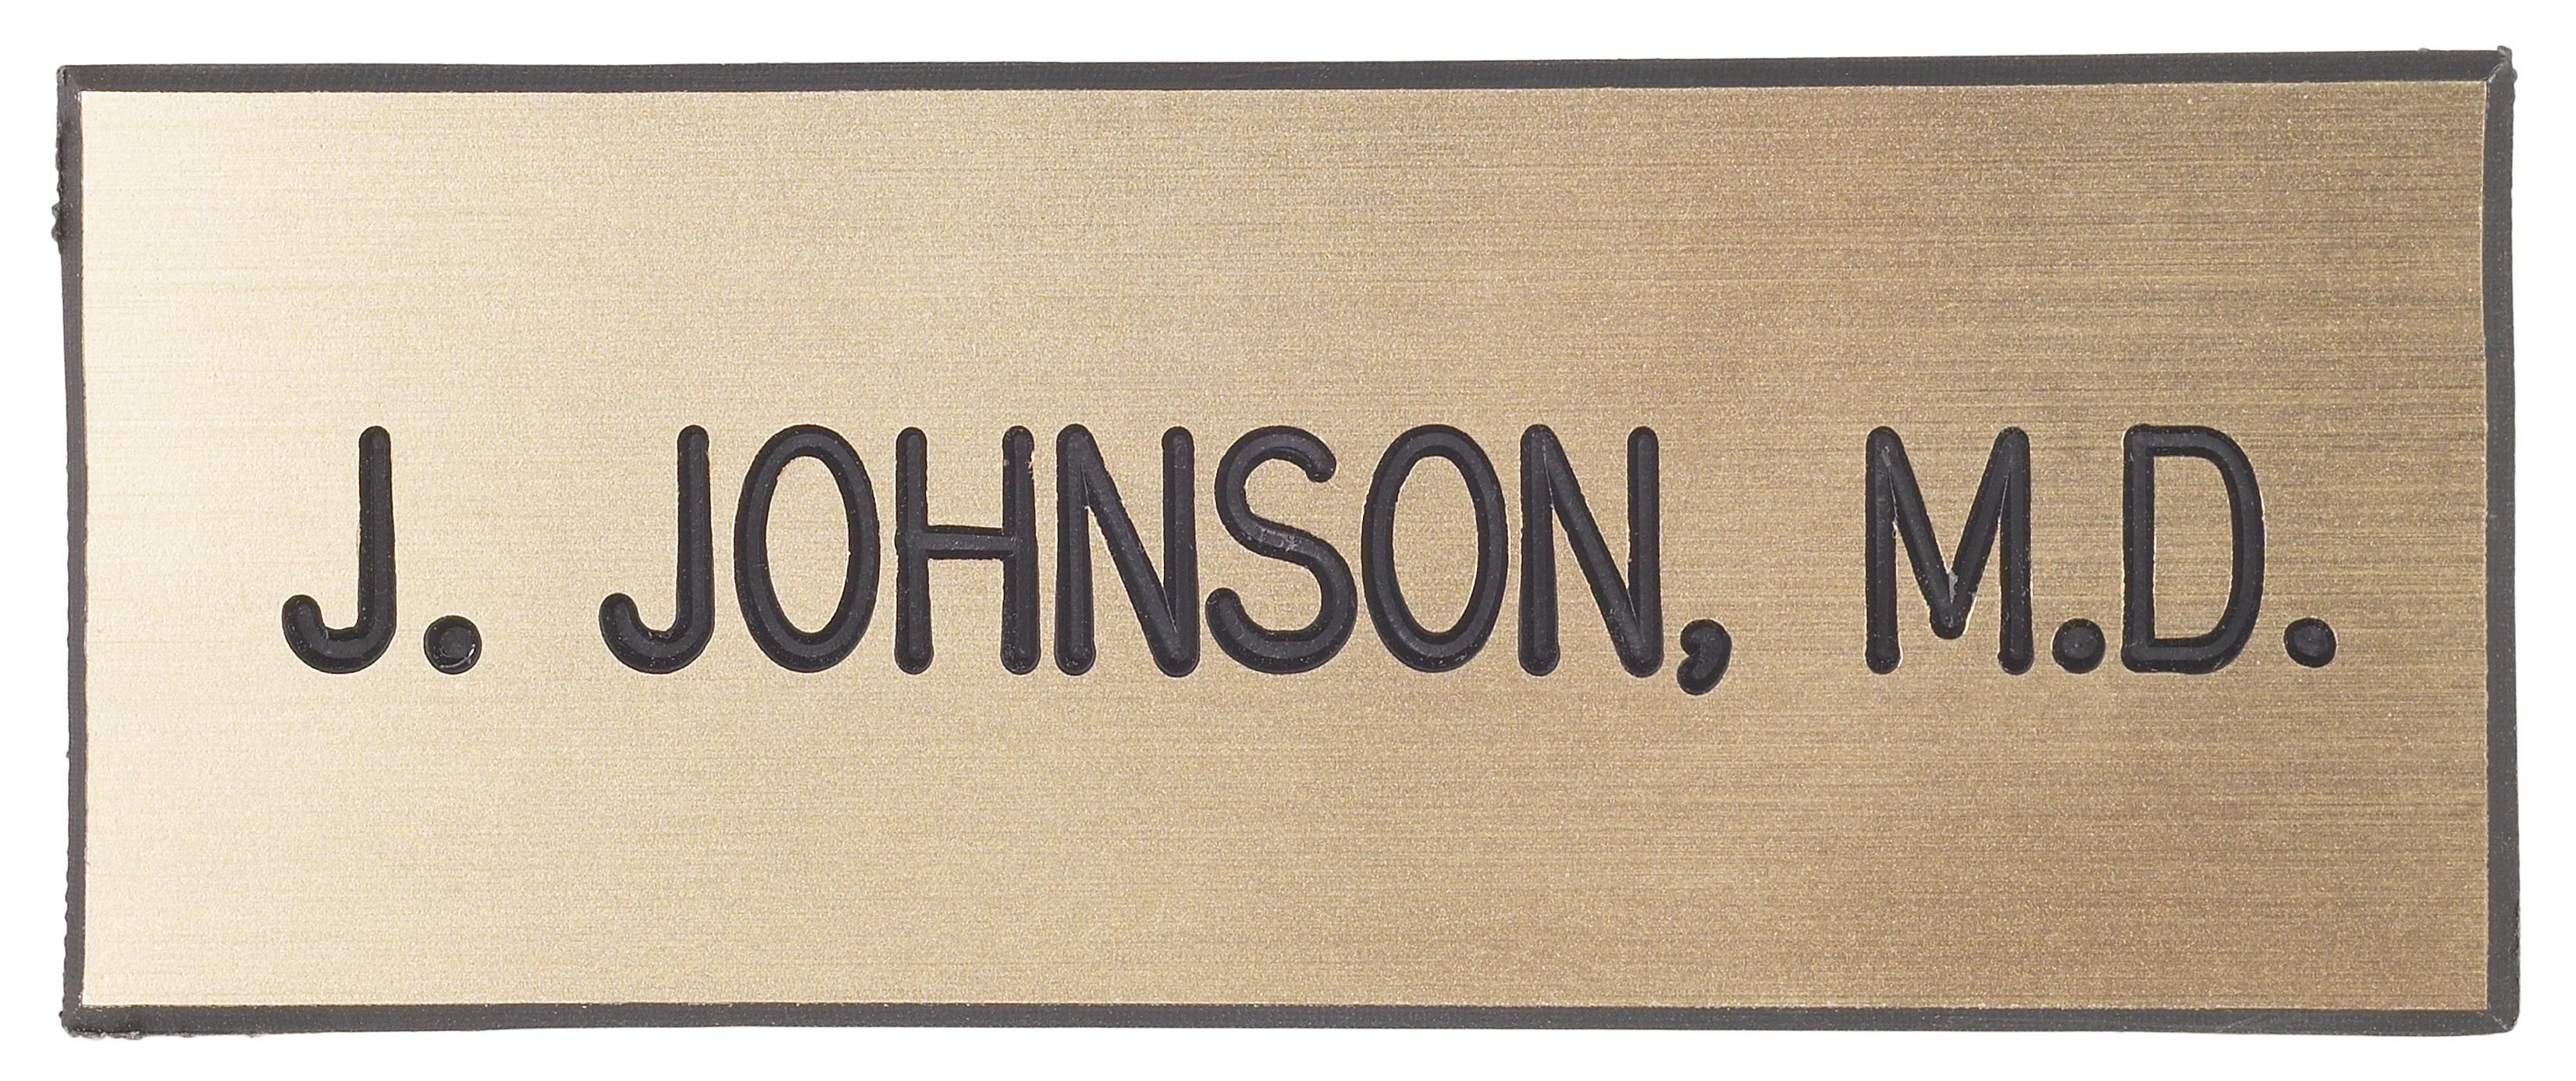 Name badges produced in Owings Mills, Maryland.